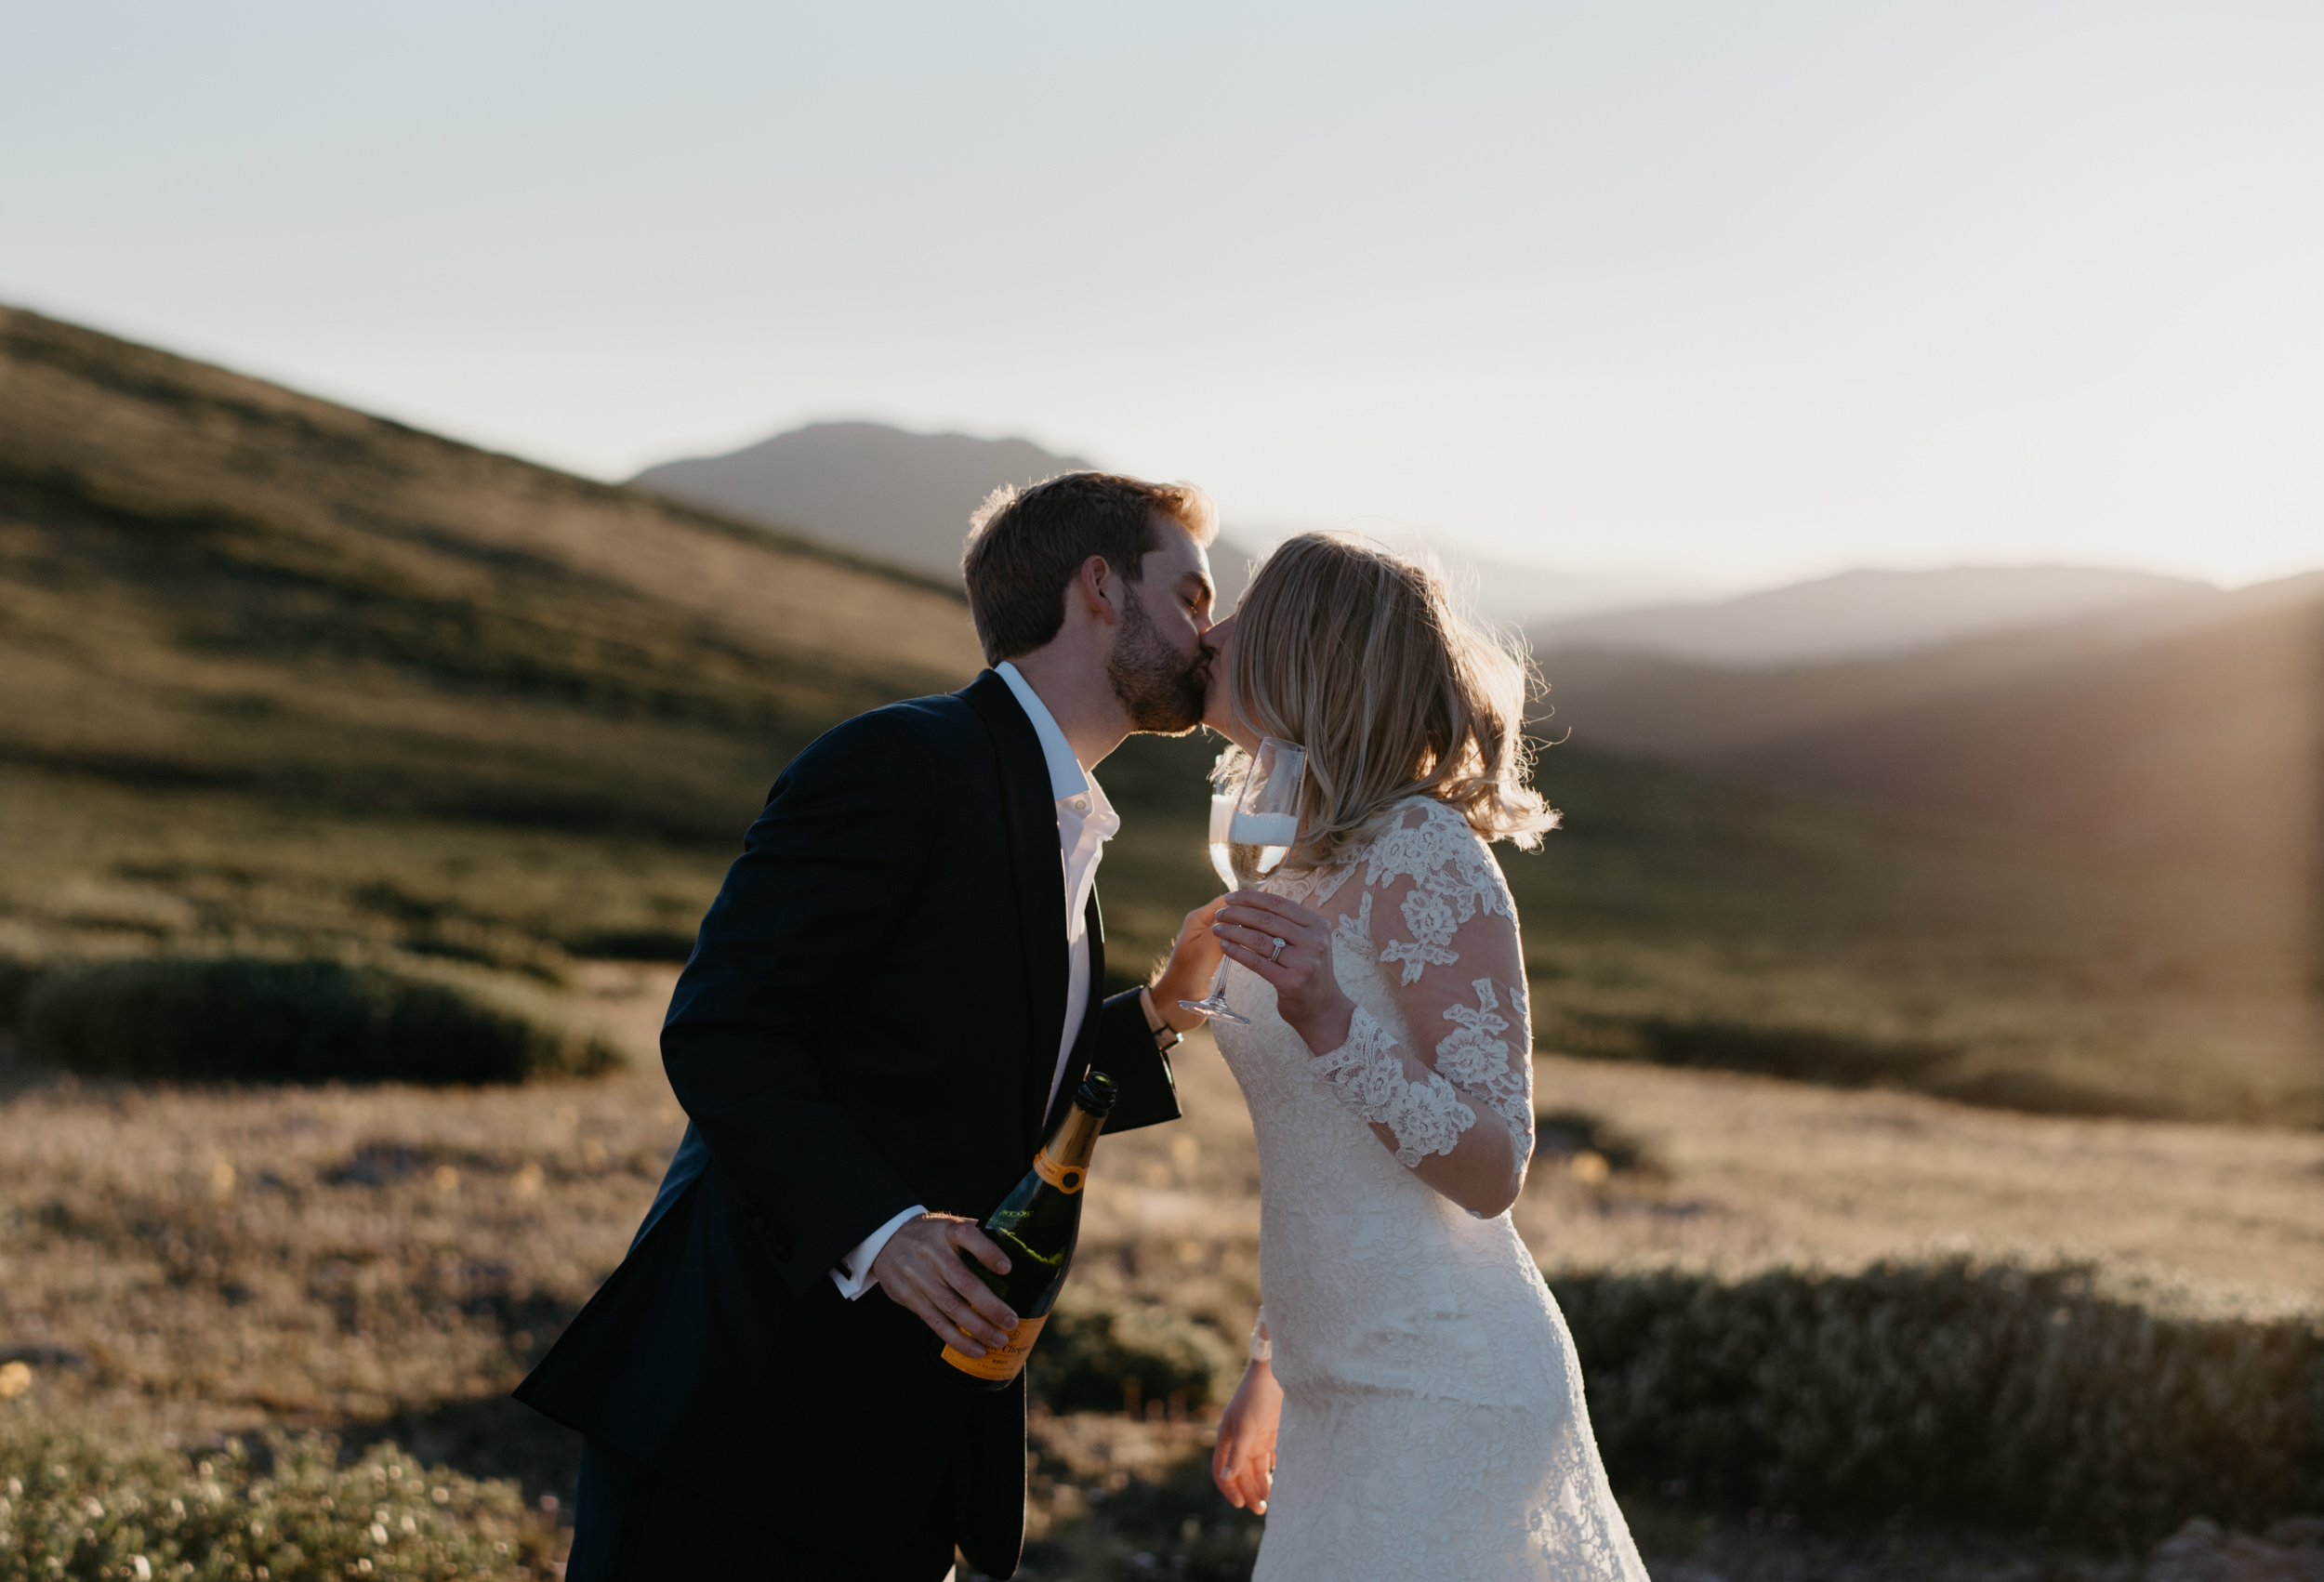 Elopement in Aspen, Colorado at Independence Pass. Colorado wedding and elopement photographer.